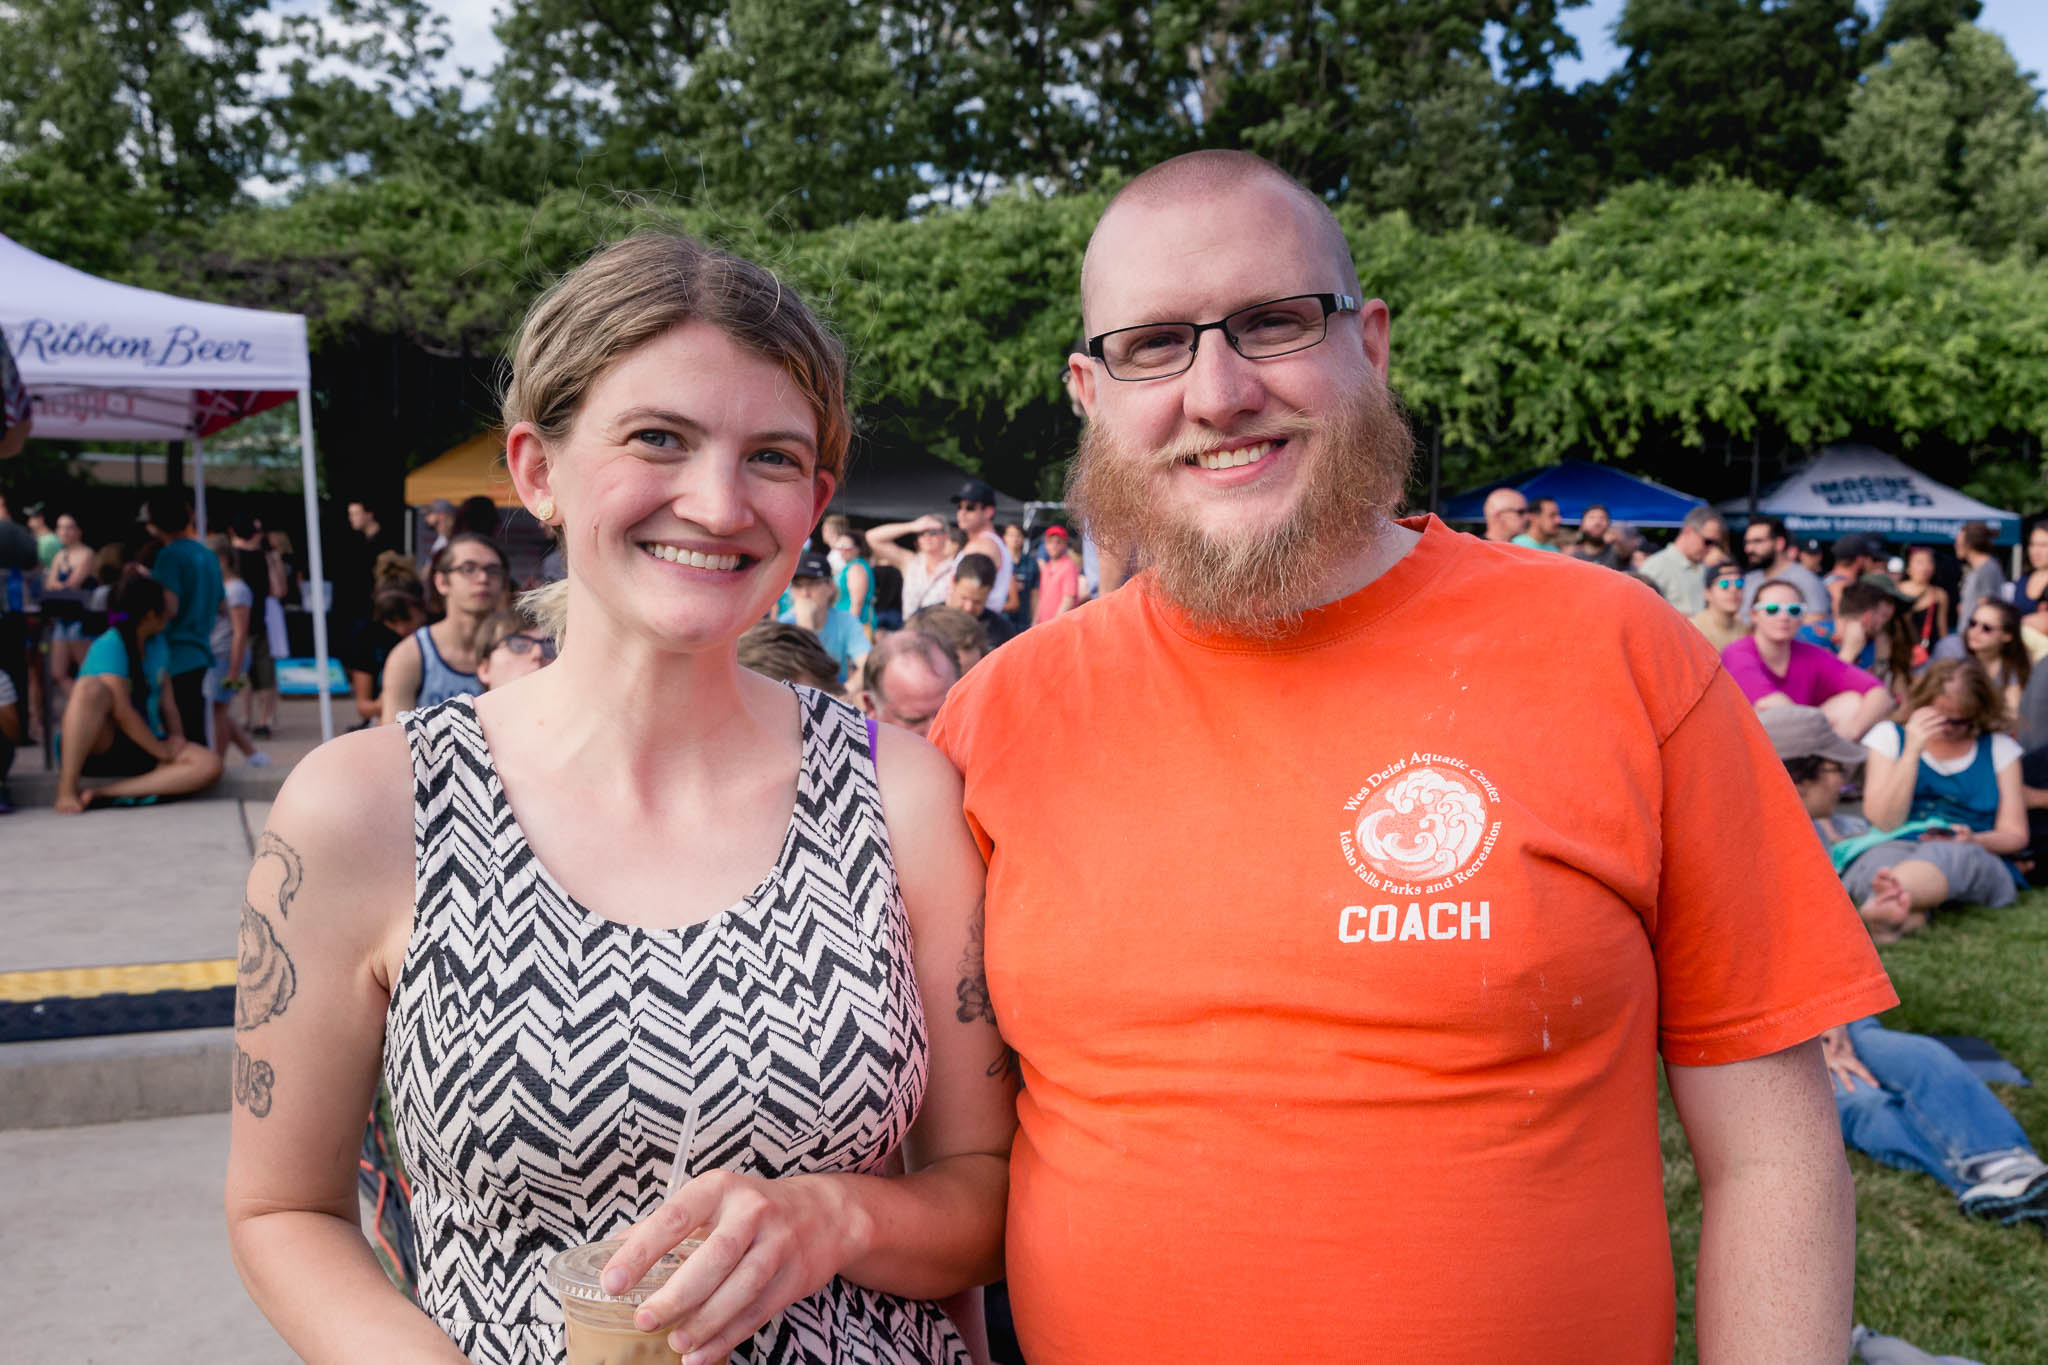 Joann and Jaren Meyers are all smiles attending this week's Ogden Twilight. Photo: Lmsorenson.net